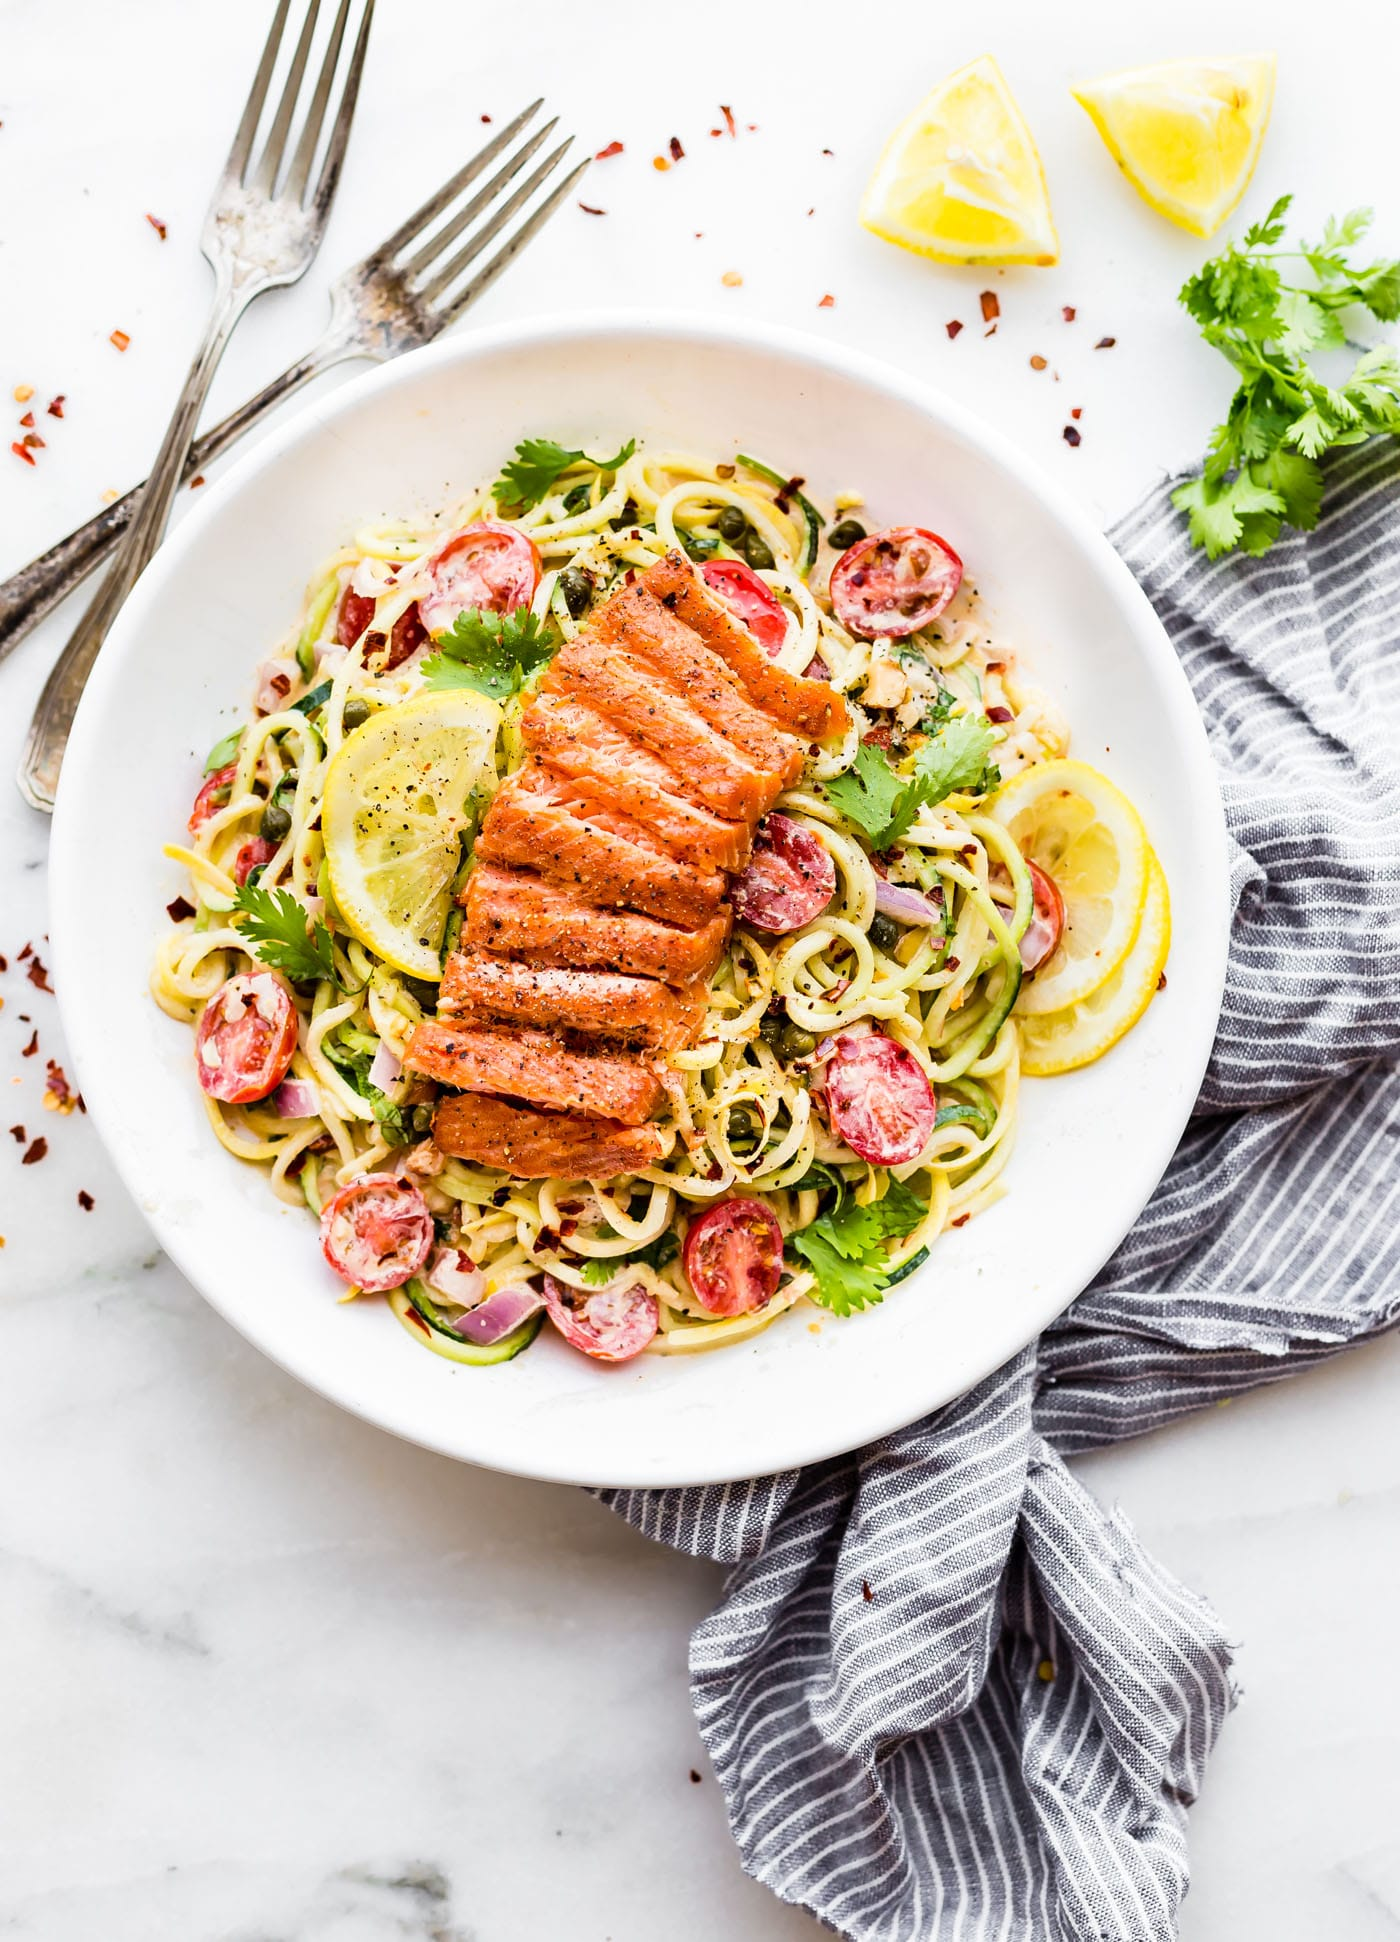 Smoked Salmon Zucchini Noodles Salad makes for a perfect no cook meal! A zippy cajun sauce tossed in chopped vegetables and zucchini noodles then topped with peppery smoked salmon. Paleo and Real food deliciousness!